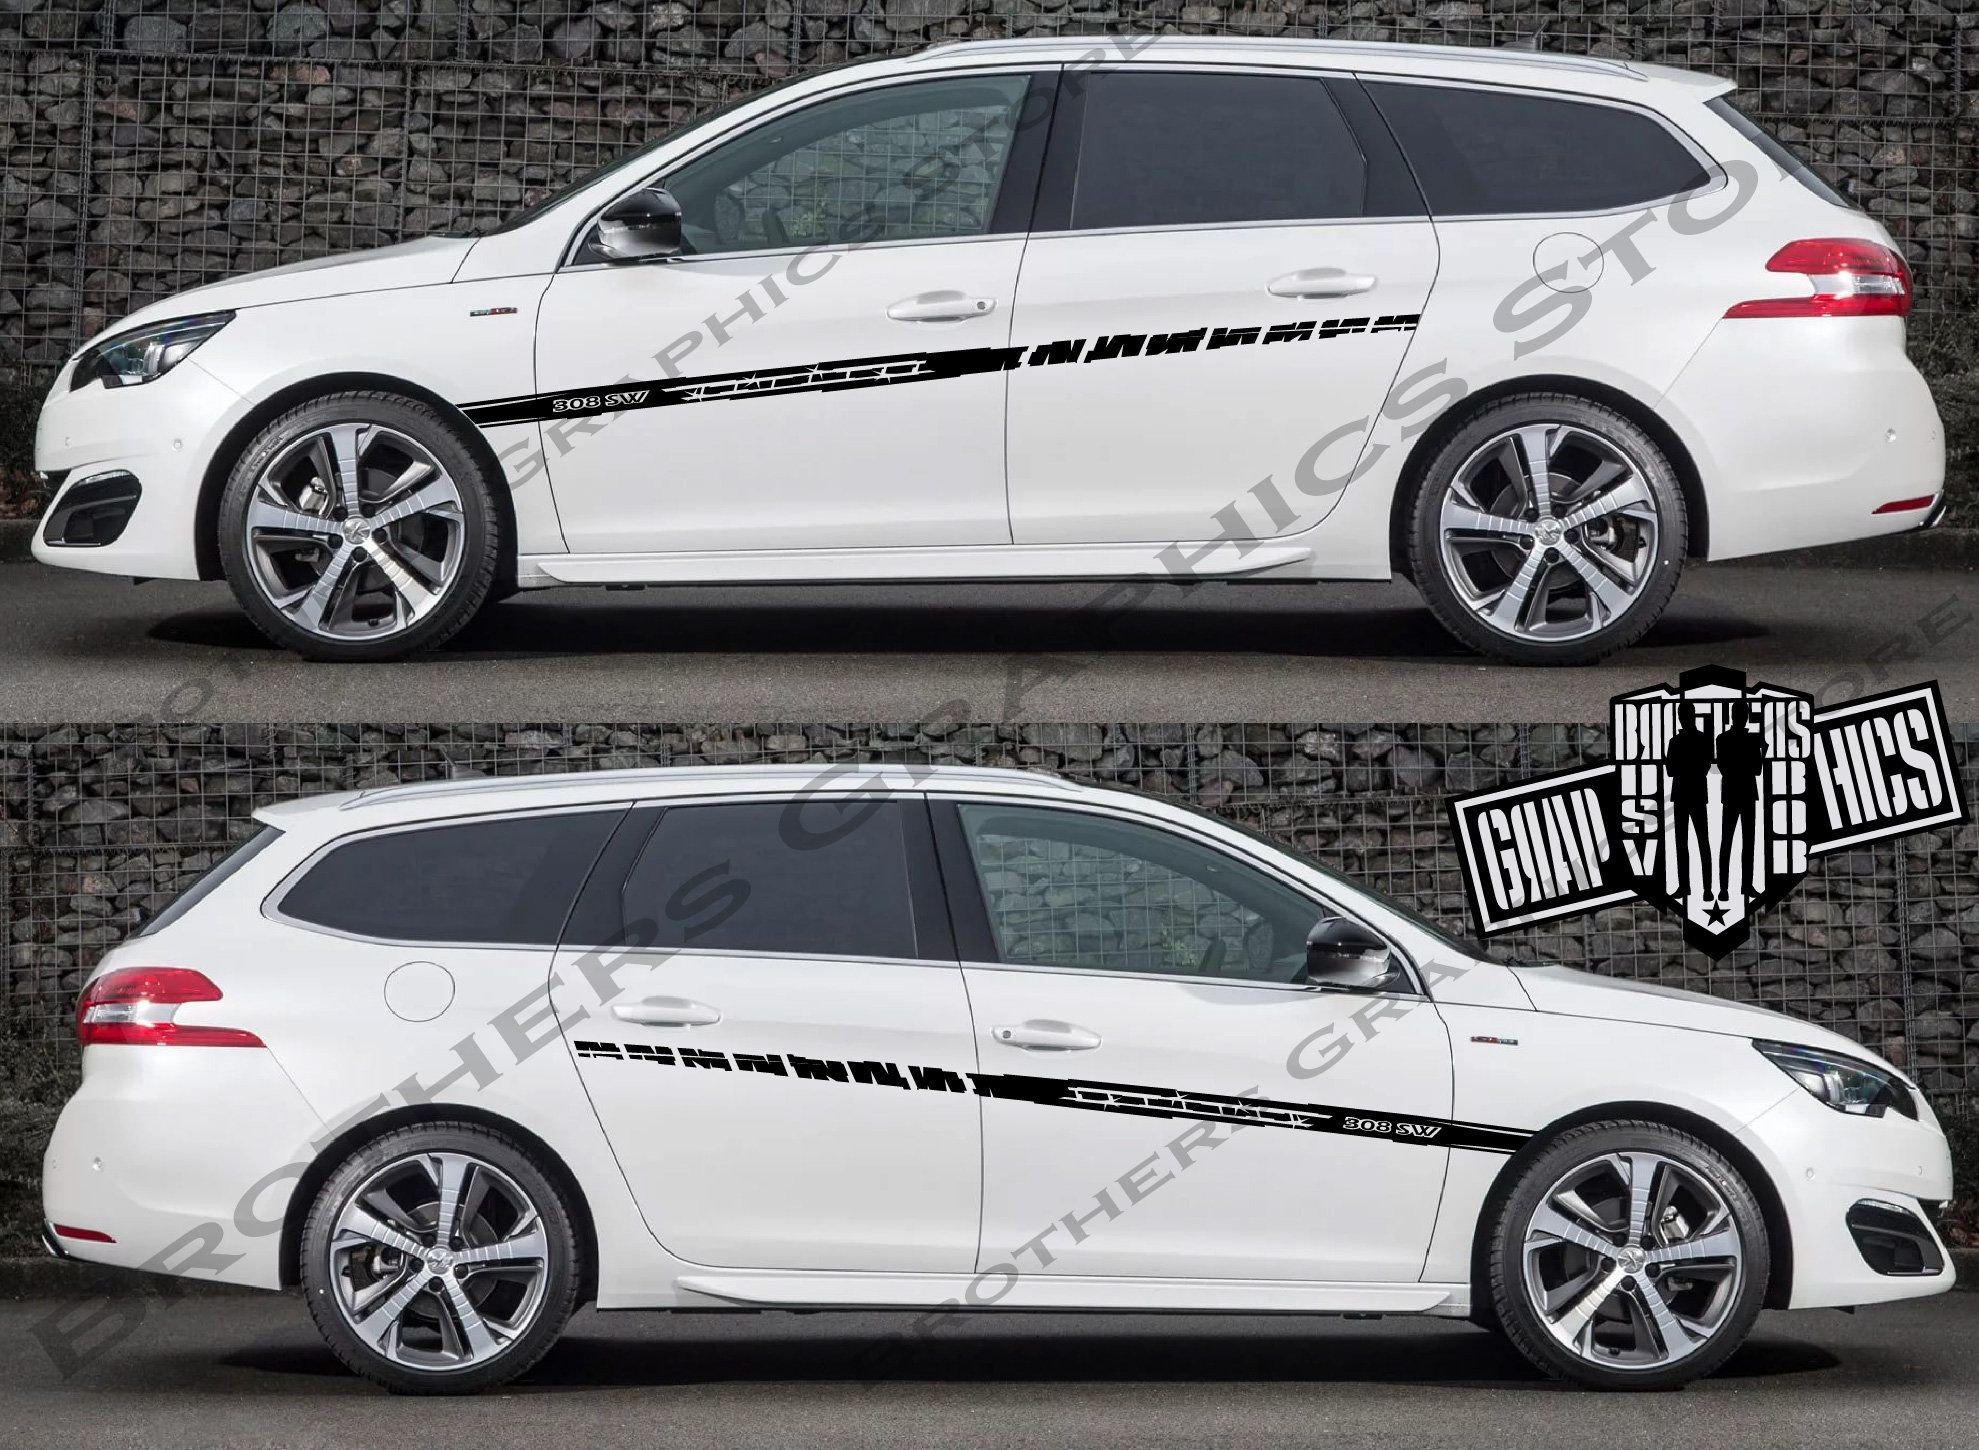 Excited To Share This Item From My Etsy Shop 2x Sticker Decal Kit Compatible With Peugeot 308 Sw Everythingelse Bir Car Model Model Cars Collection Peugeot